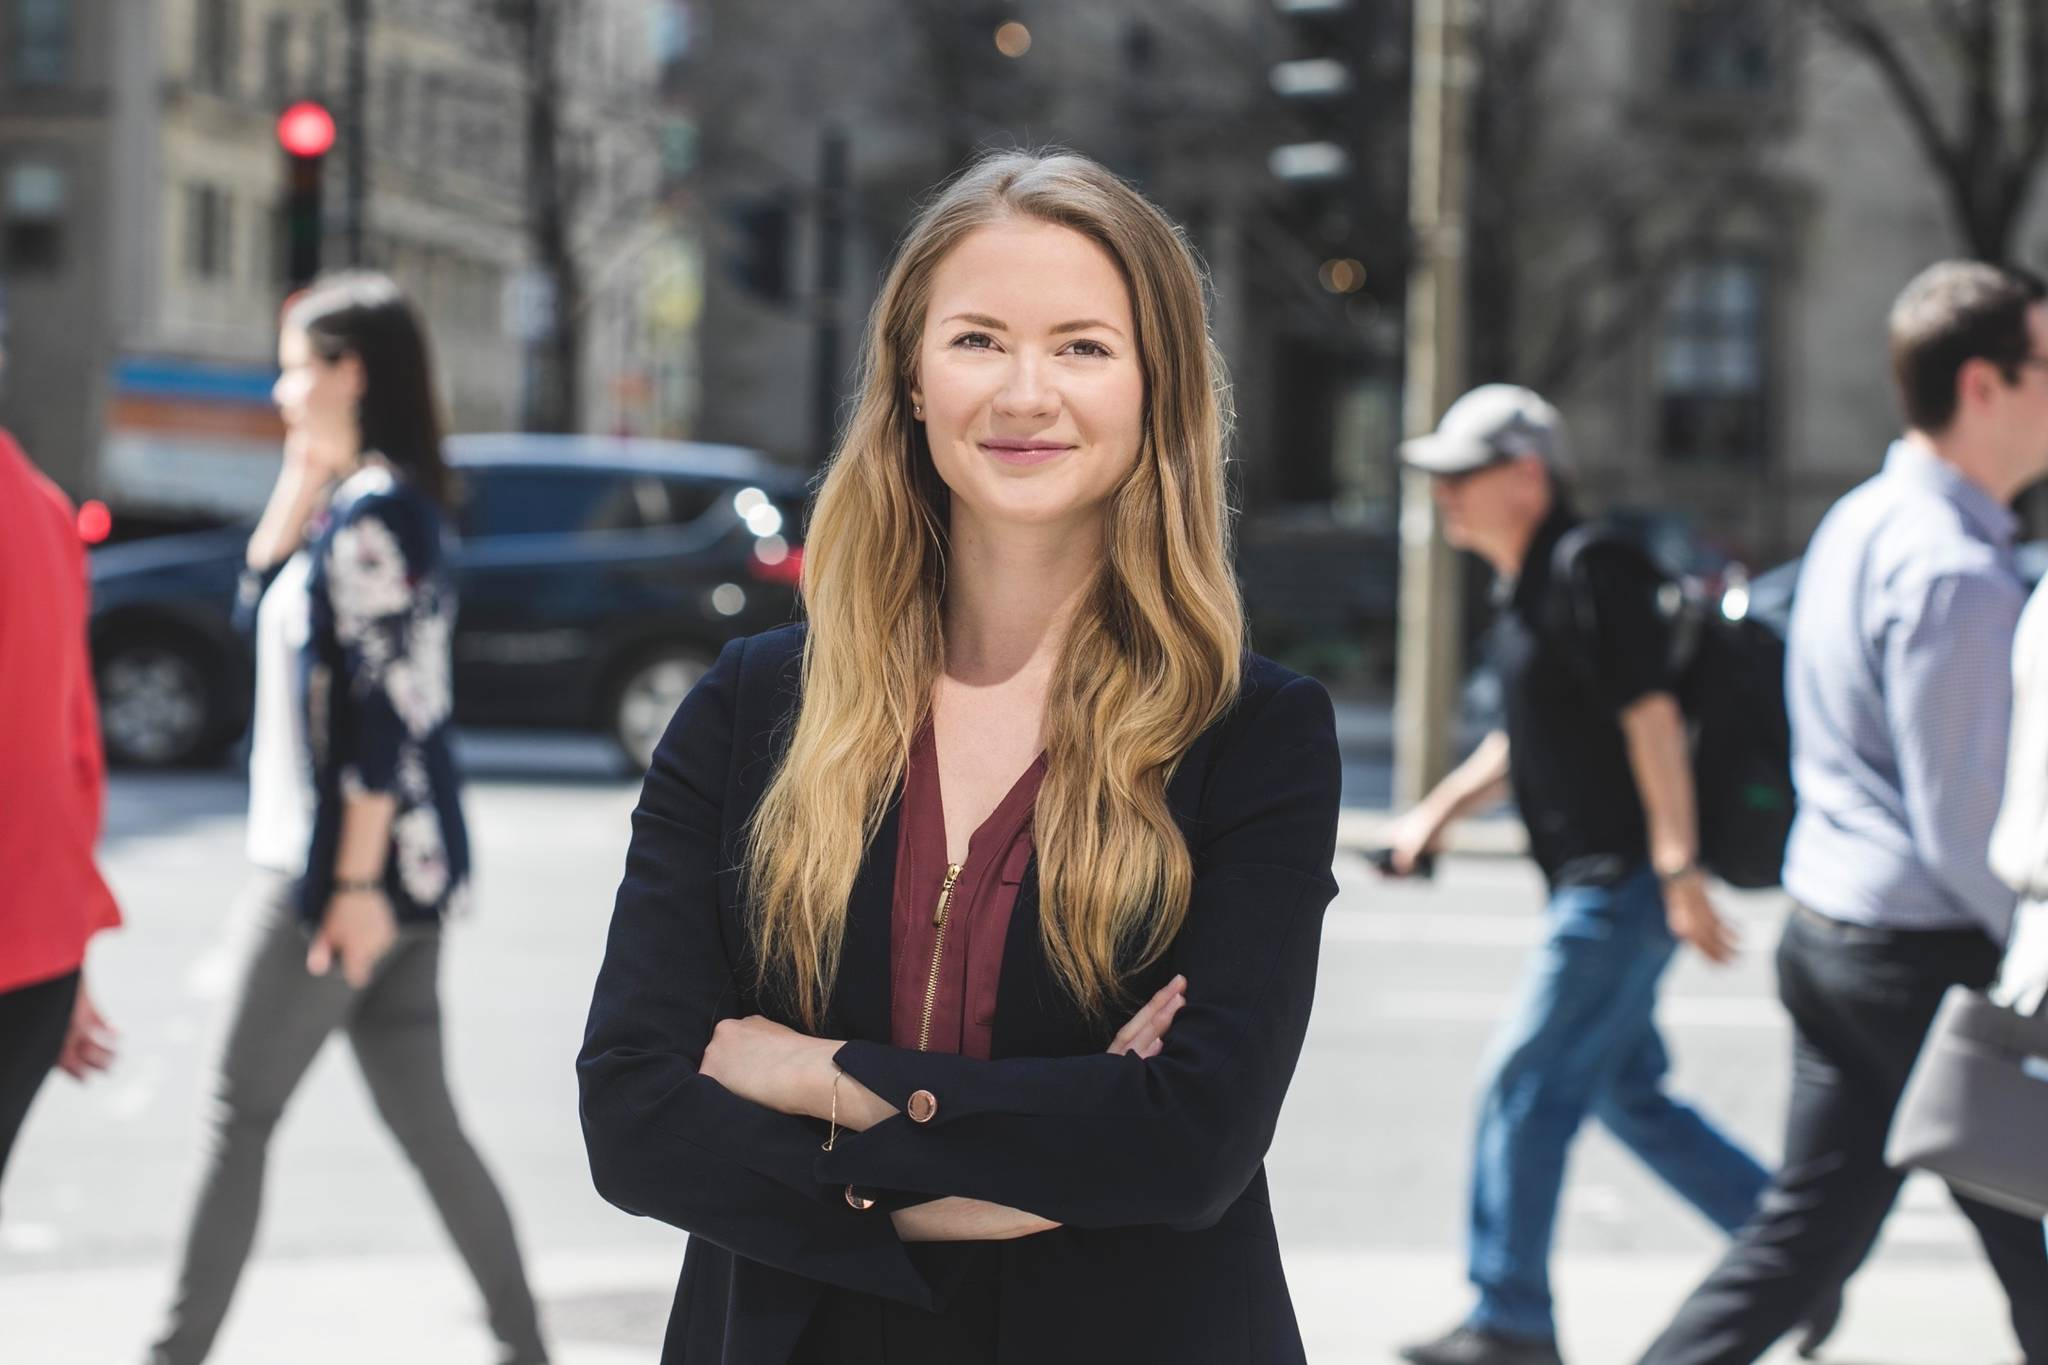 Muriel Protzer is a policy analyst for B.C. and Alberta with the Canadian Federation of Independent Business